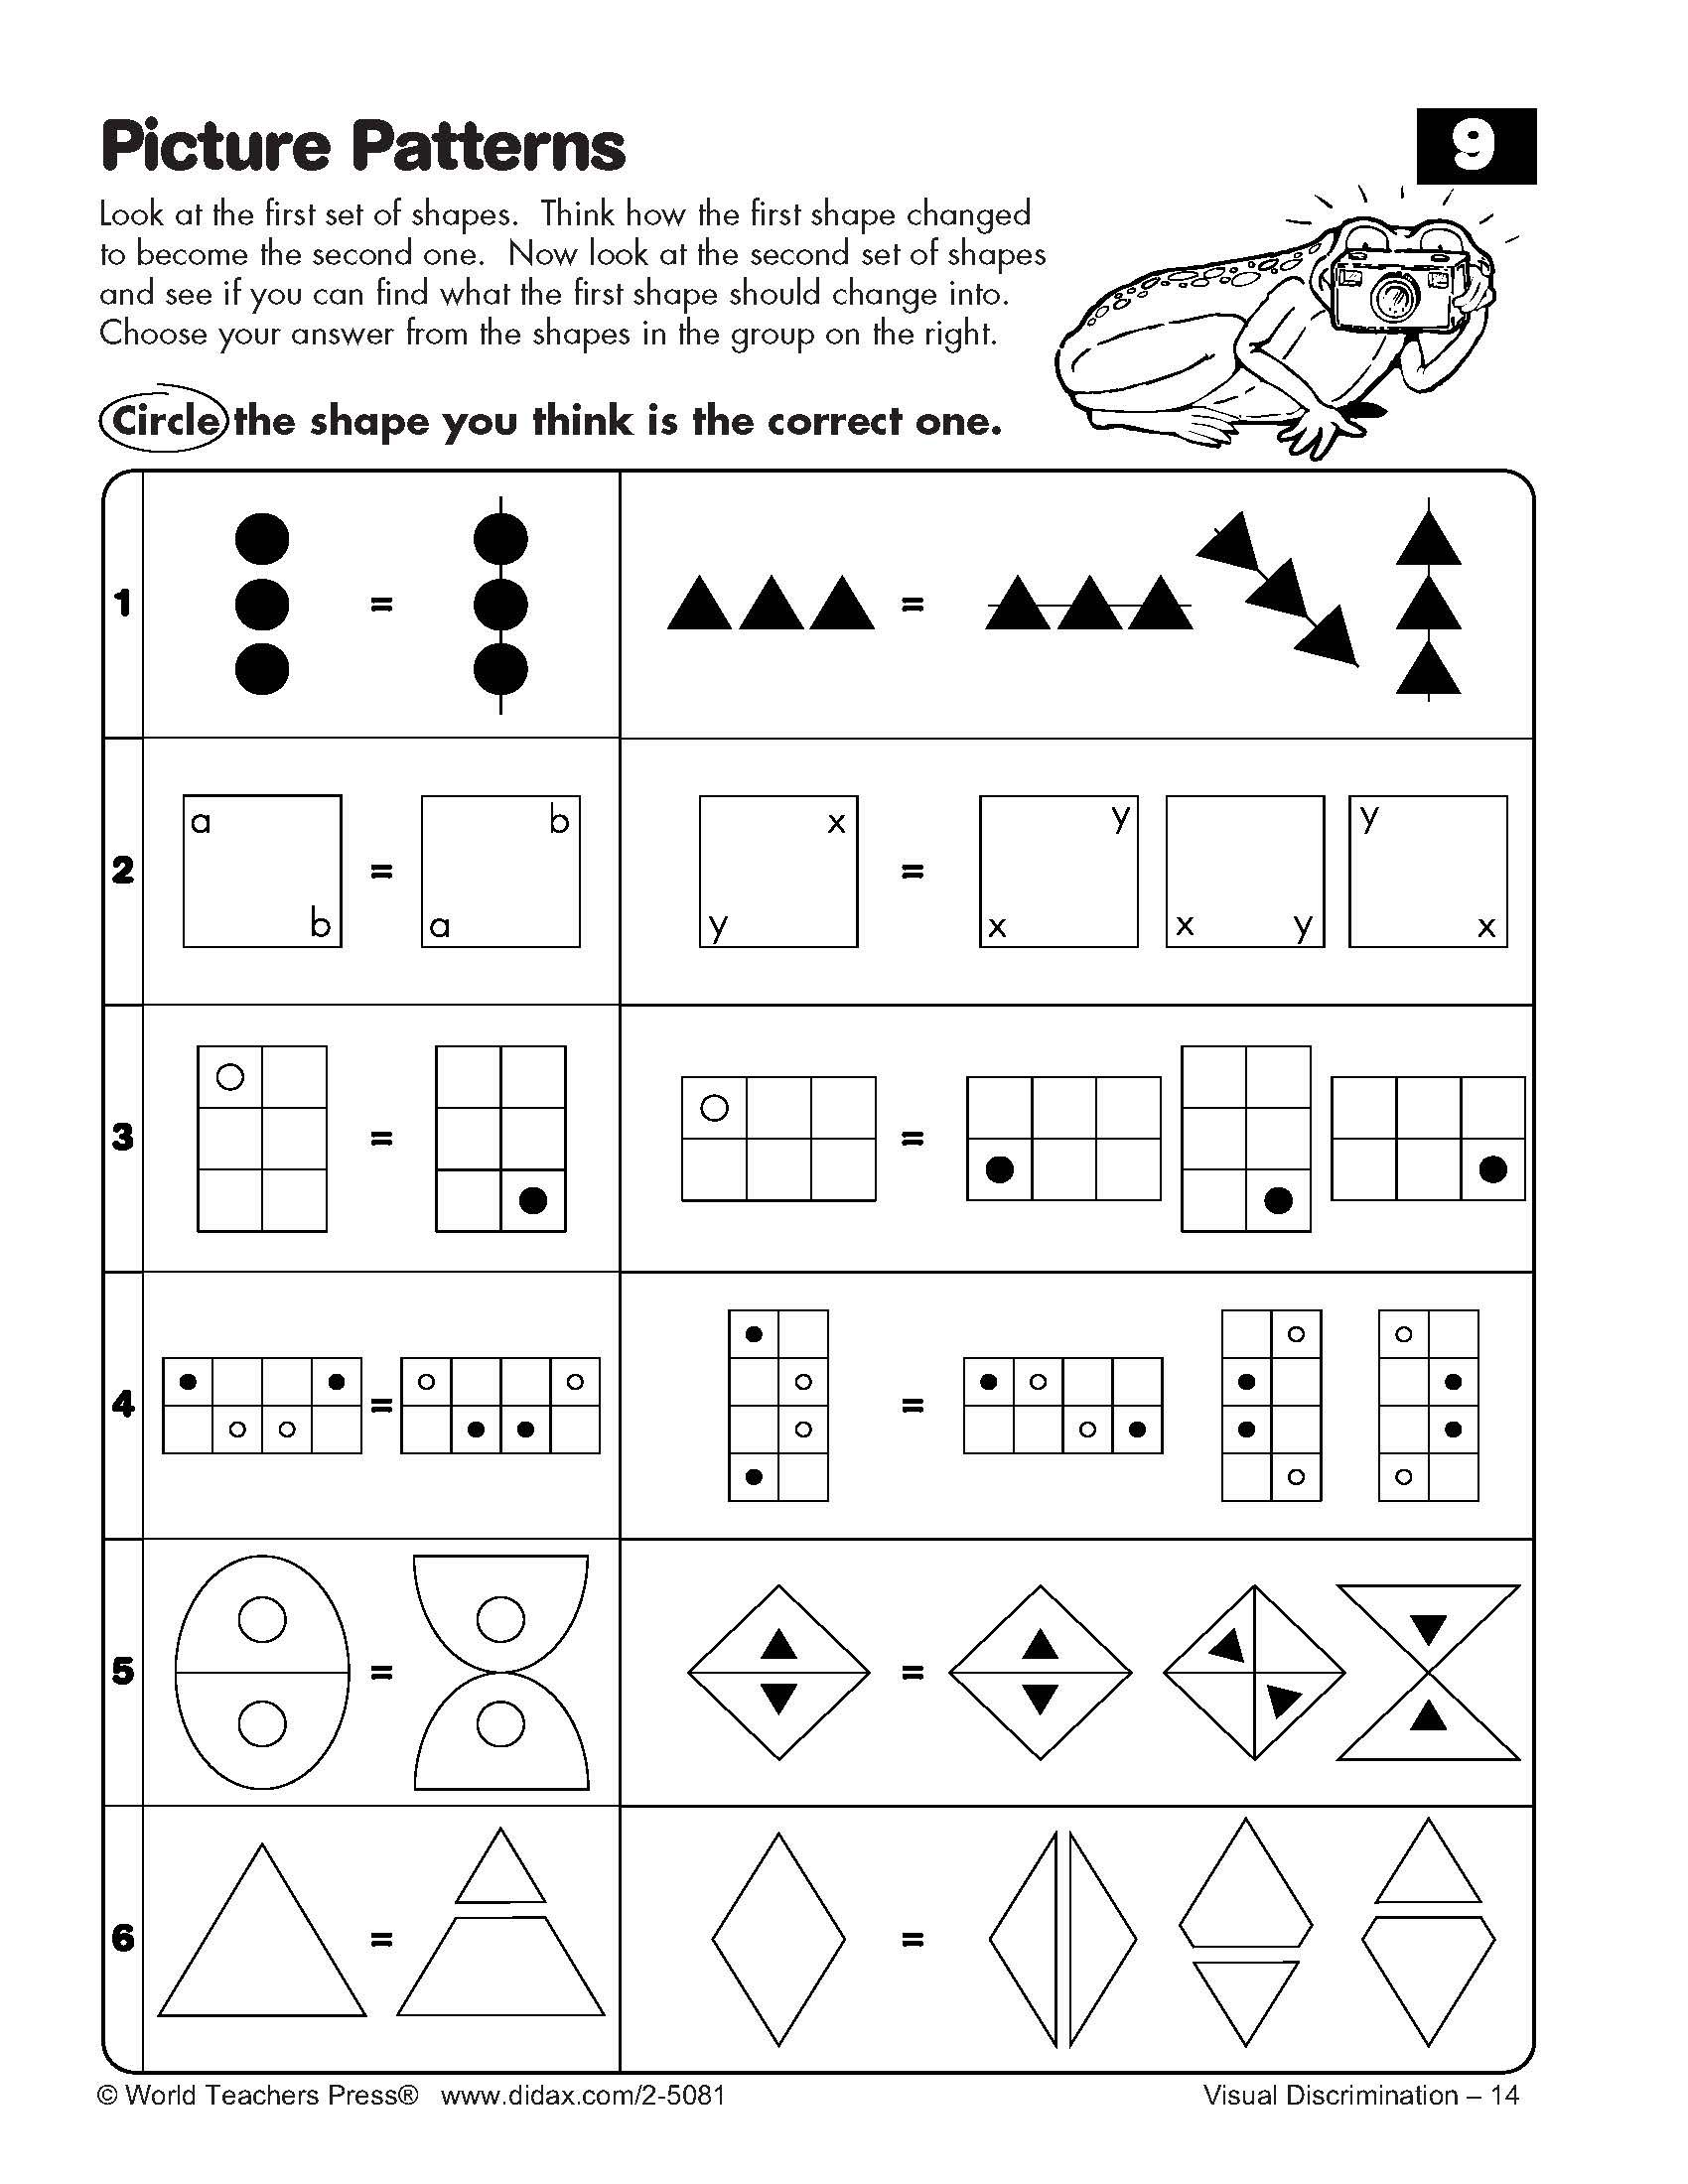 Visual Discrimination: Exploring and Solving Picture Patterns | Math ...